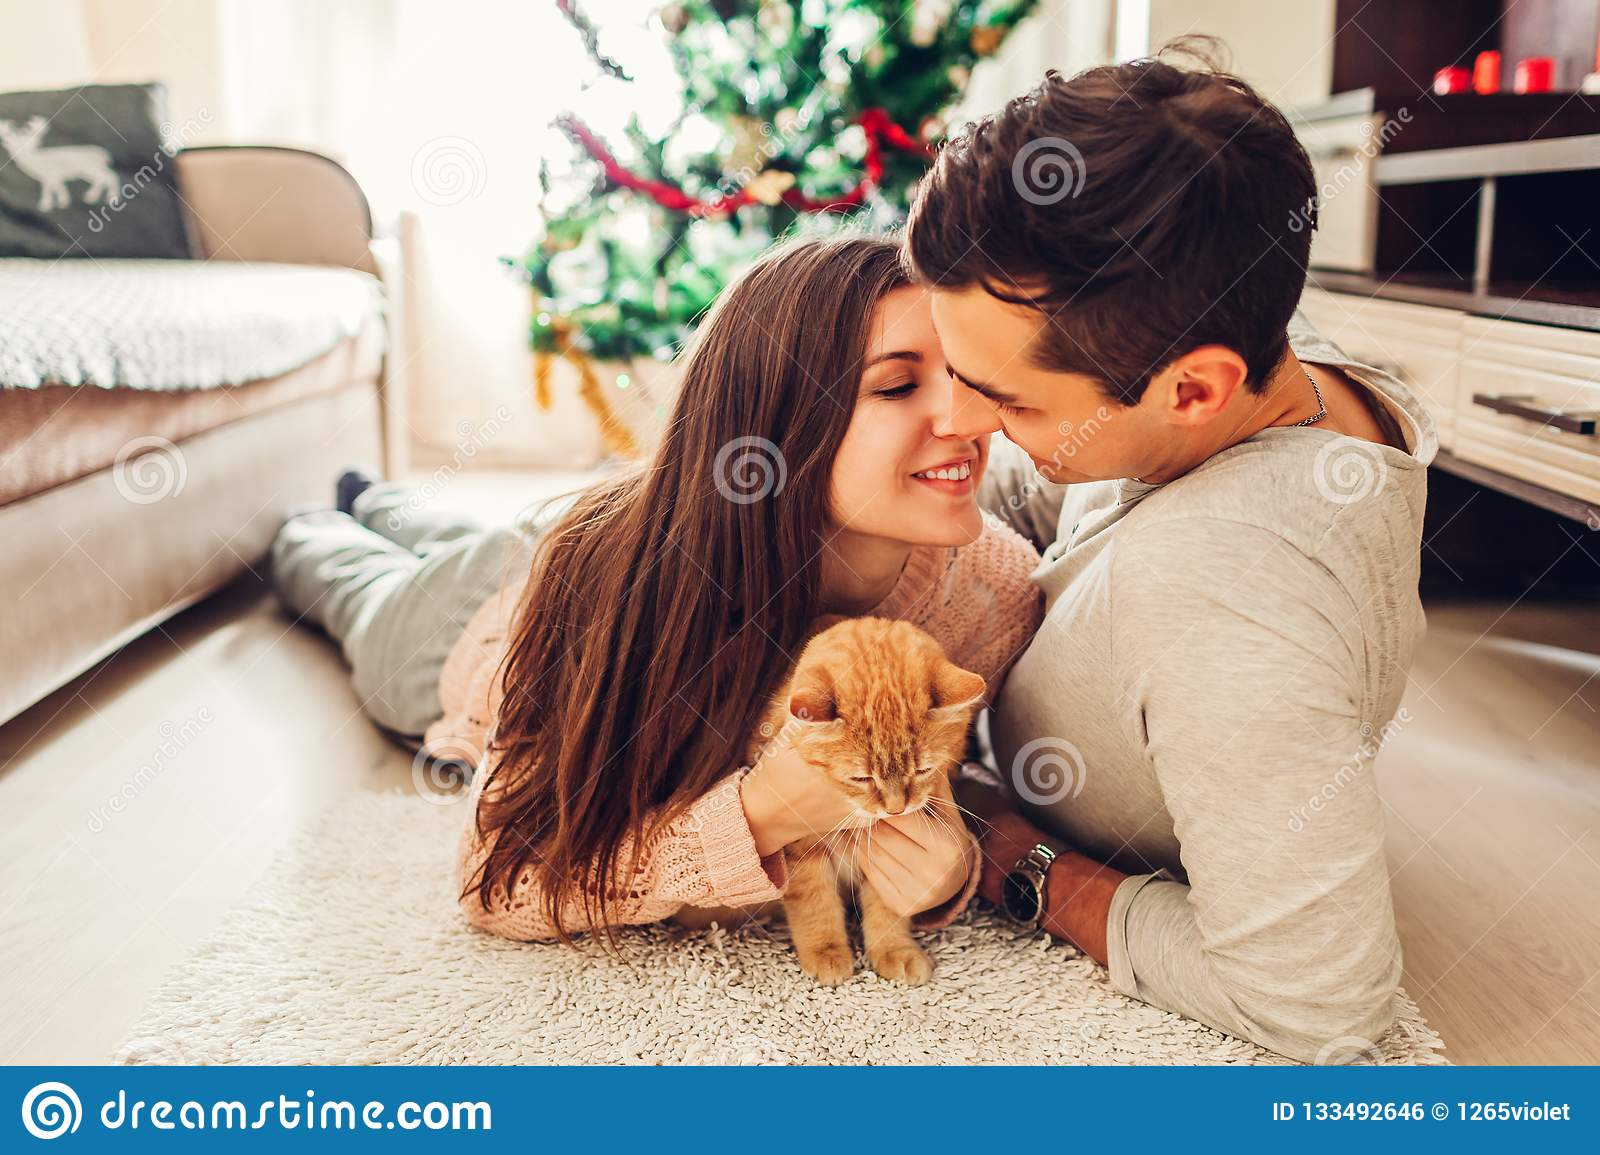 Couple in love lying by Christmas tree and playing with cat at home. Man and woman kissing